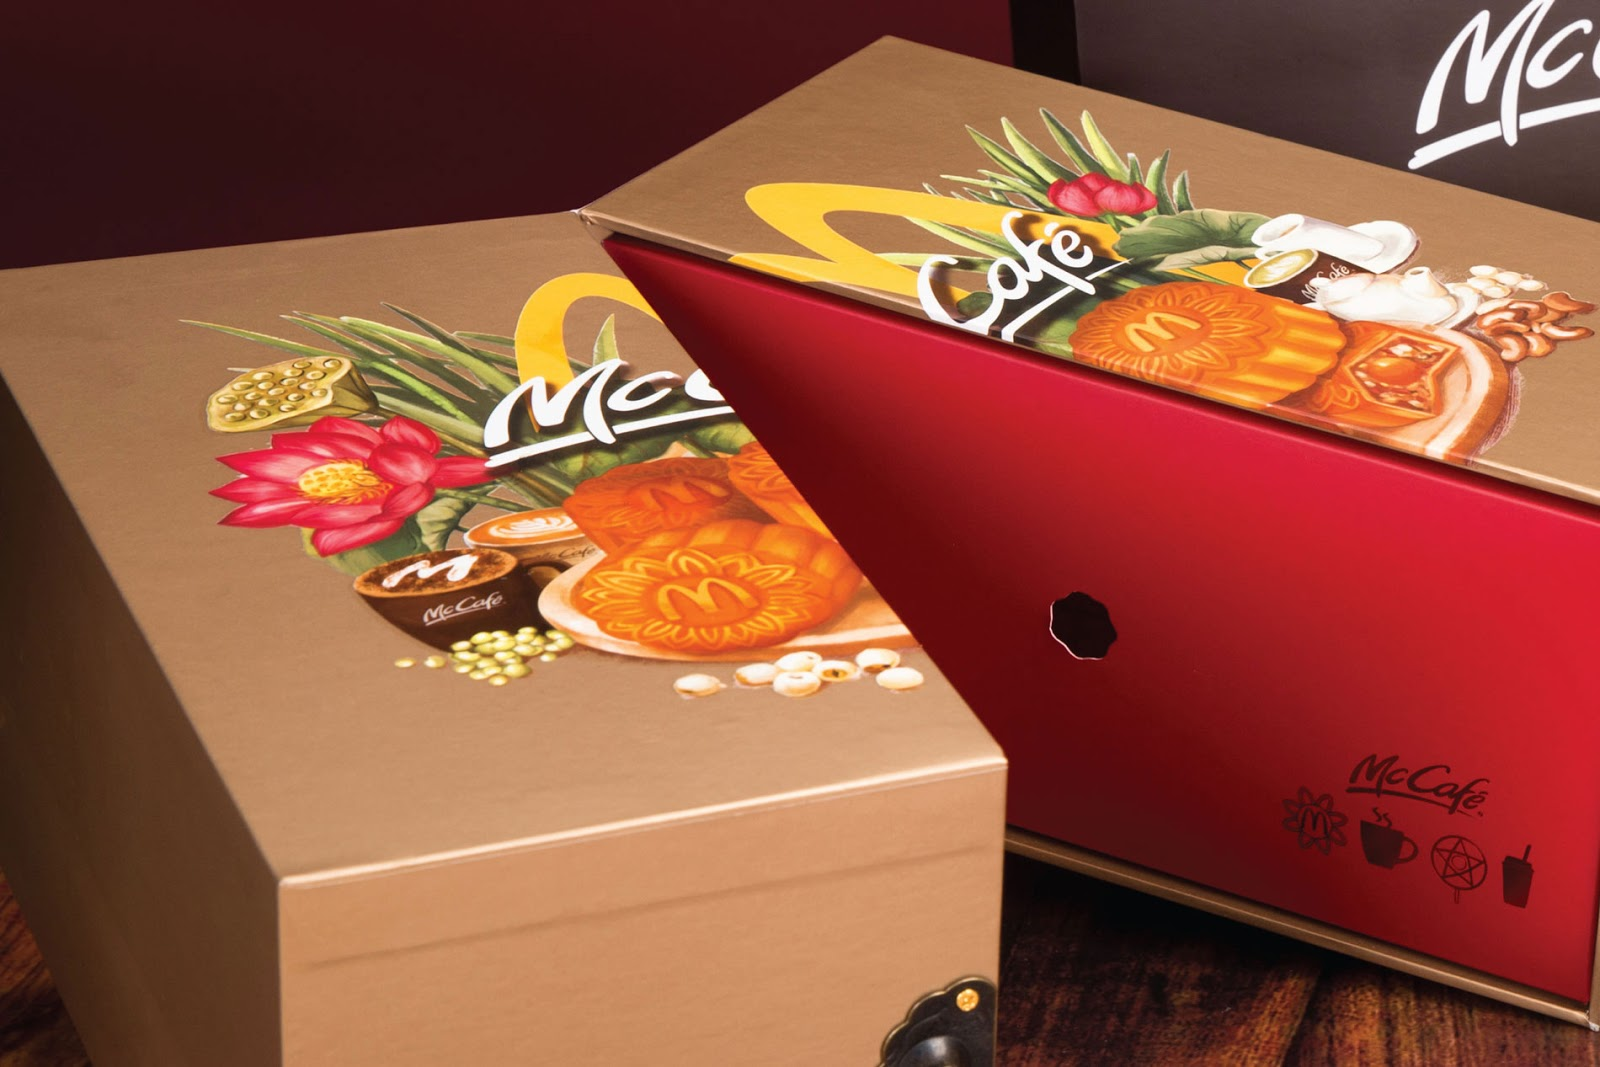 rgb_creative_McDonalds-Vietnam-Mooncake-Box-2017-02